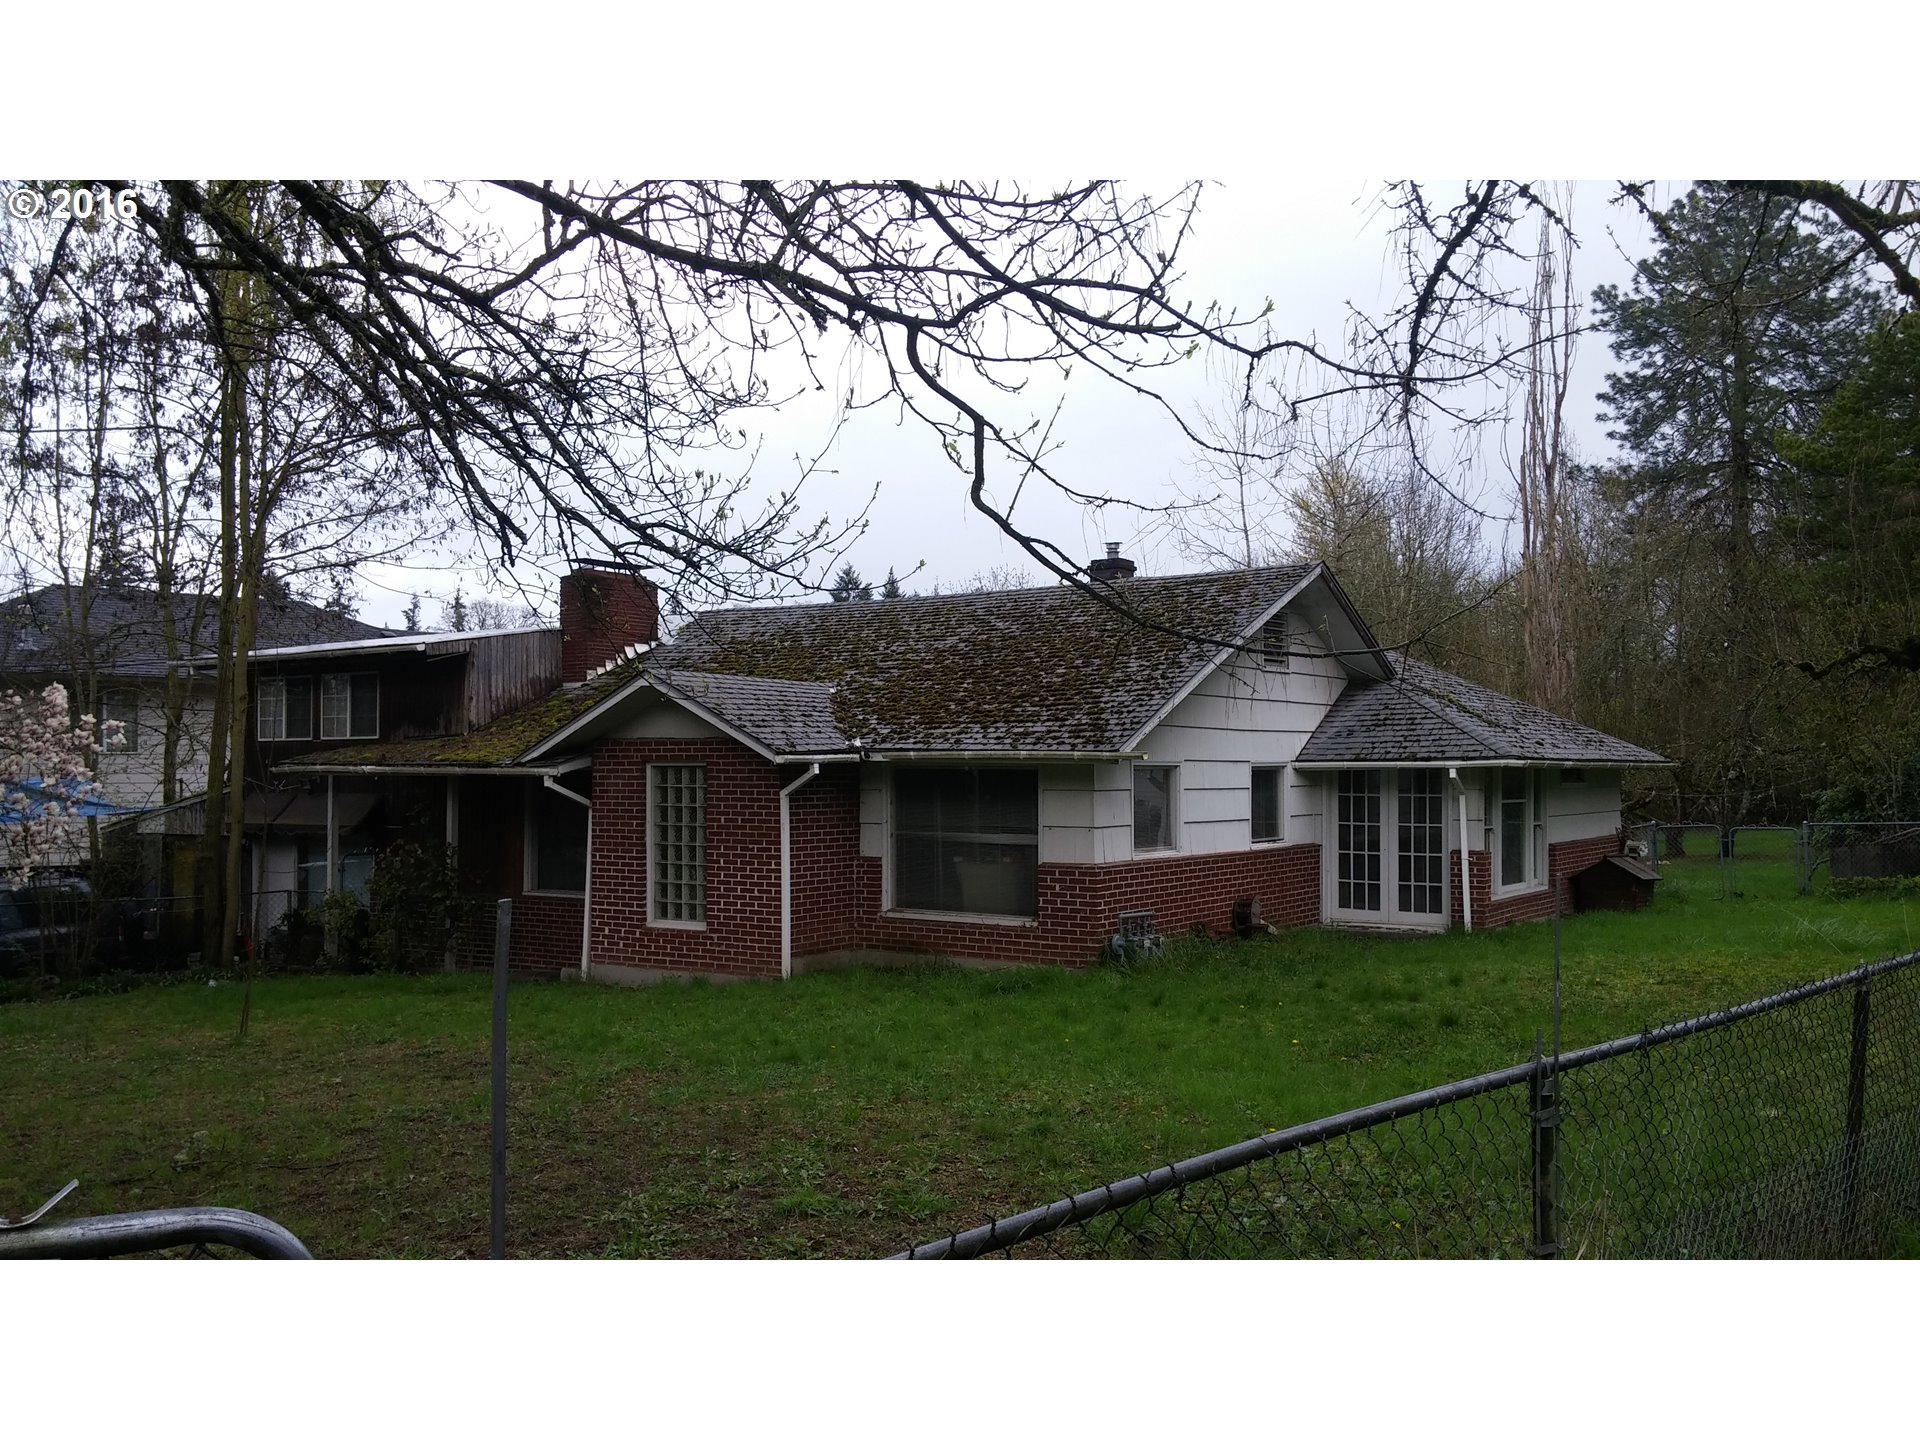 lots and land properties for sale in tigard oregon between 500 000 750 000